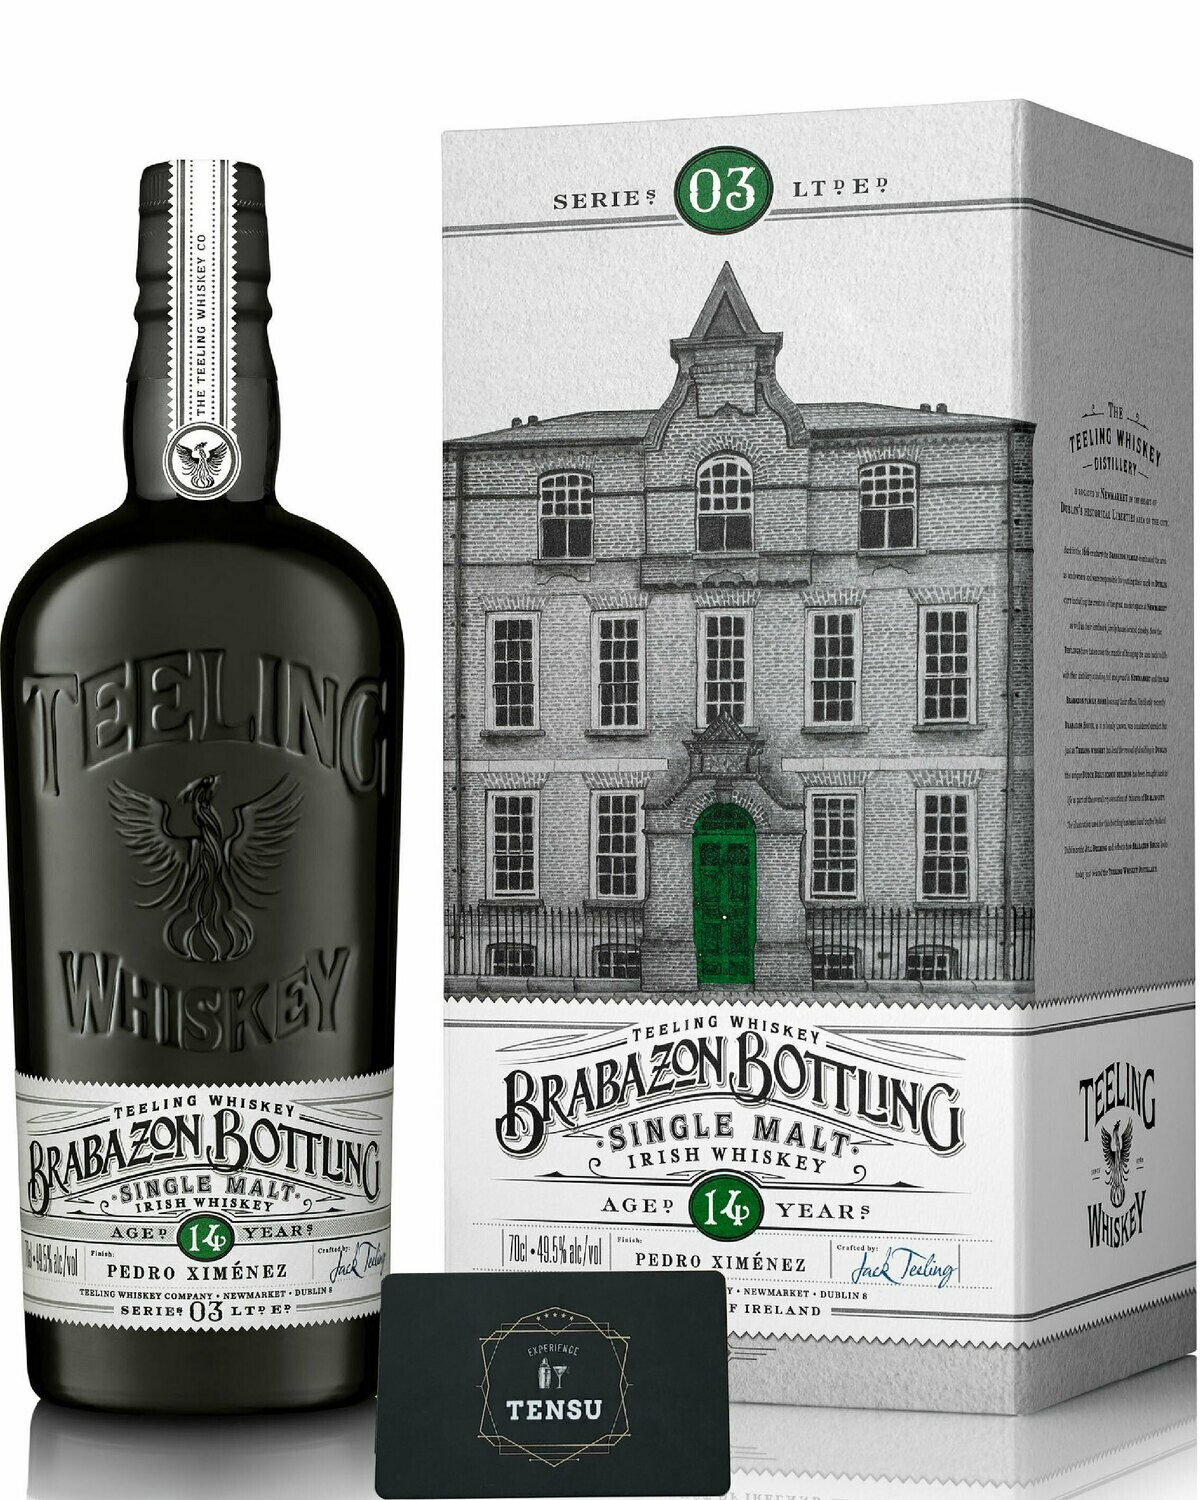 Teeling Series 3 (Brabazon) PX 14 Years Old